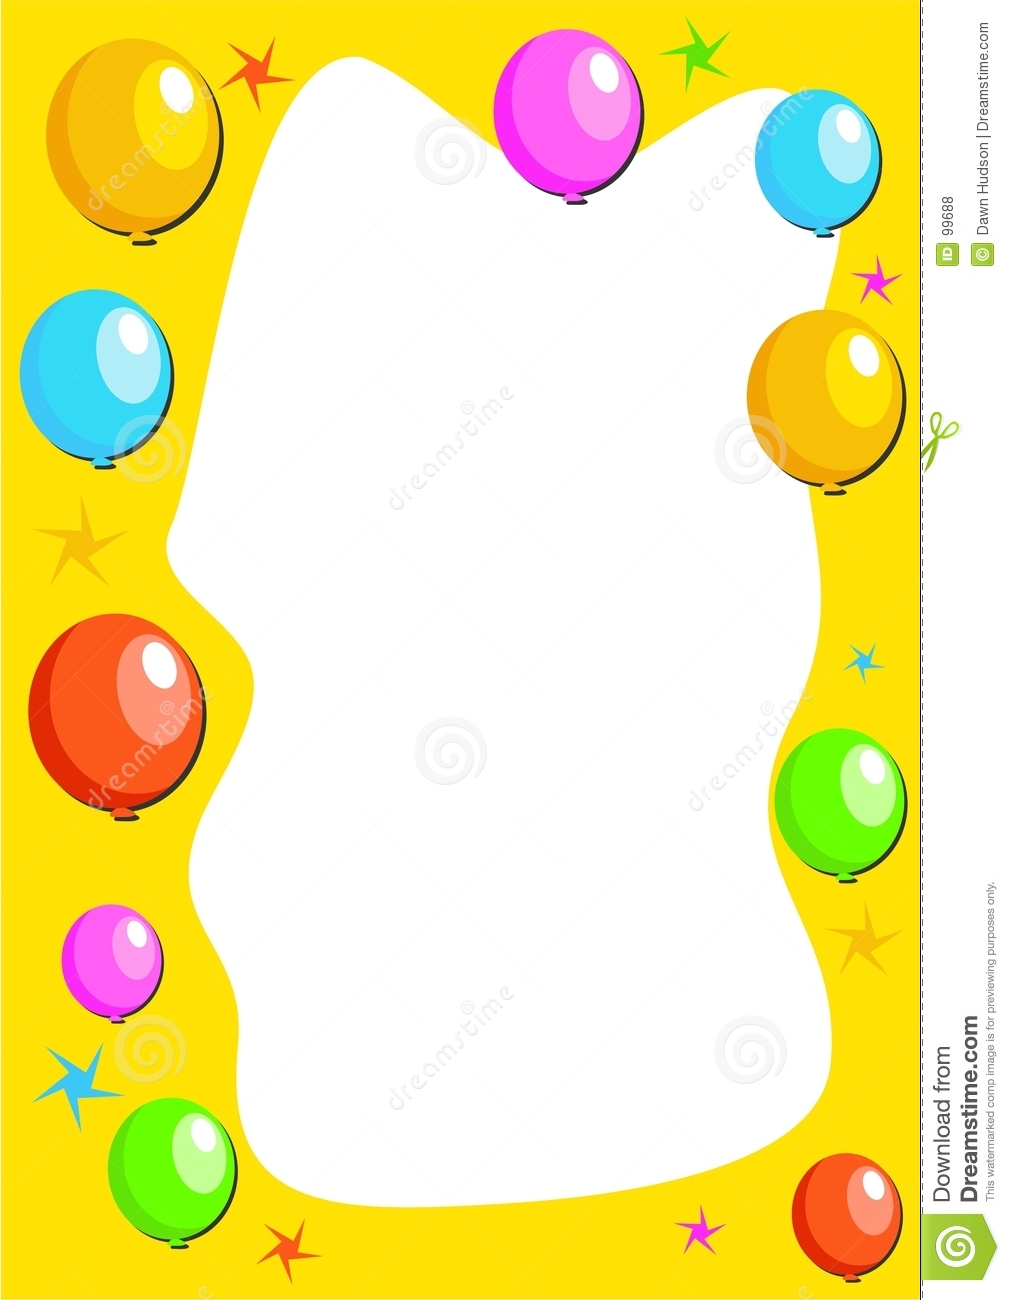 Birthday party clipart borders clip art free Birthday Party Clip Art Borders | Clipart Panda - Free Clipart Images clip art free